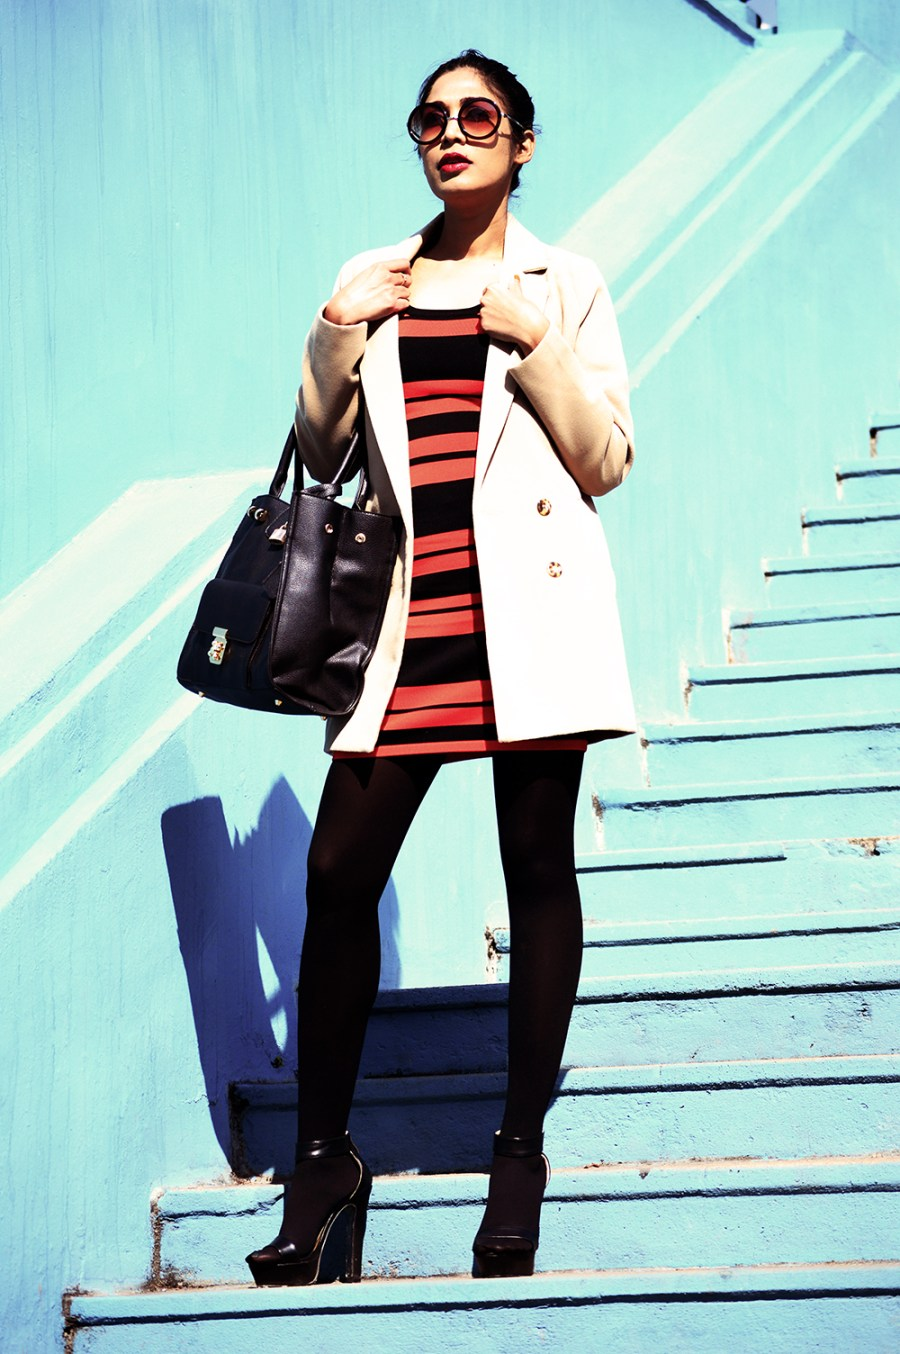 Fashion, Style, Indian Fashion color, Striped Dress, Color, Photography, Street Style, Winter Fashion, Beauty-1